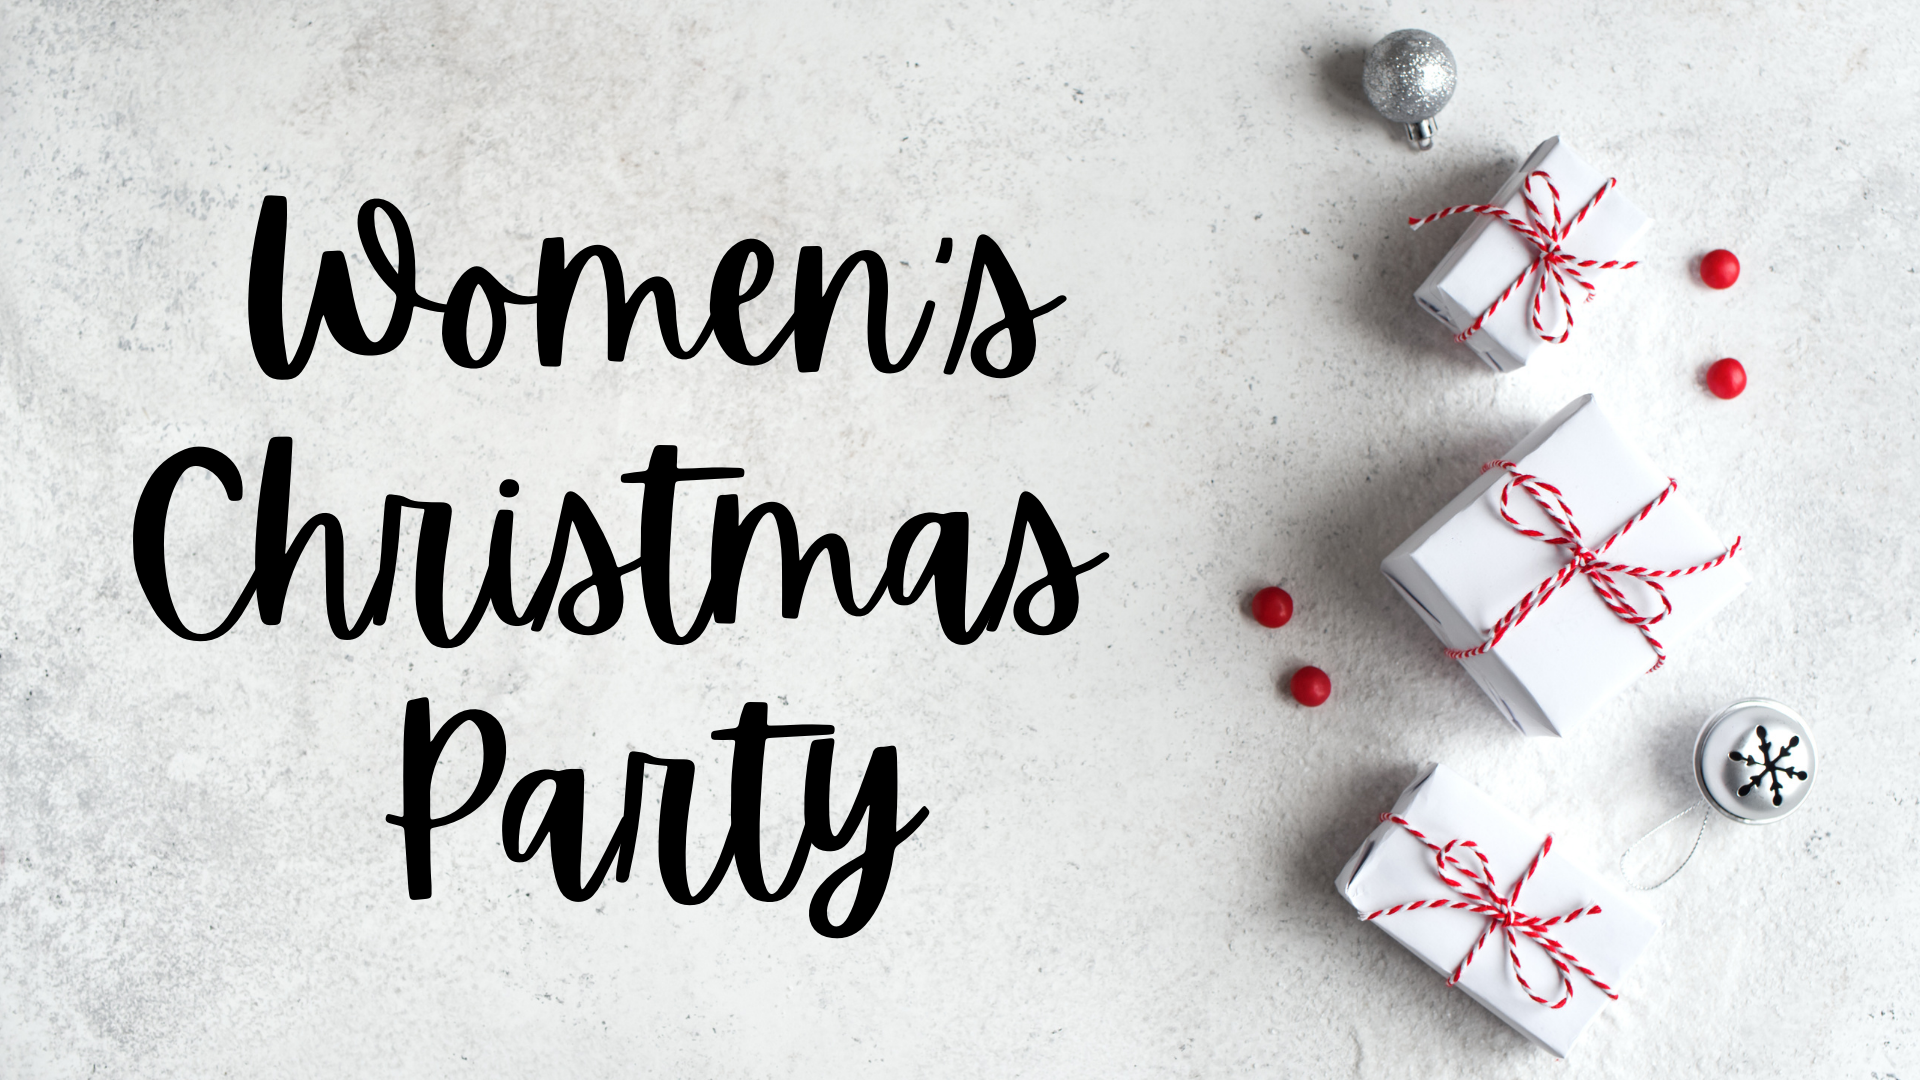 Women's Christmas Party 1920x1080 image